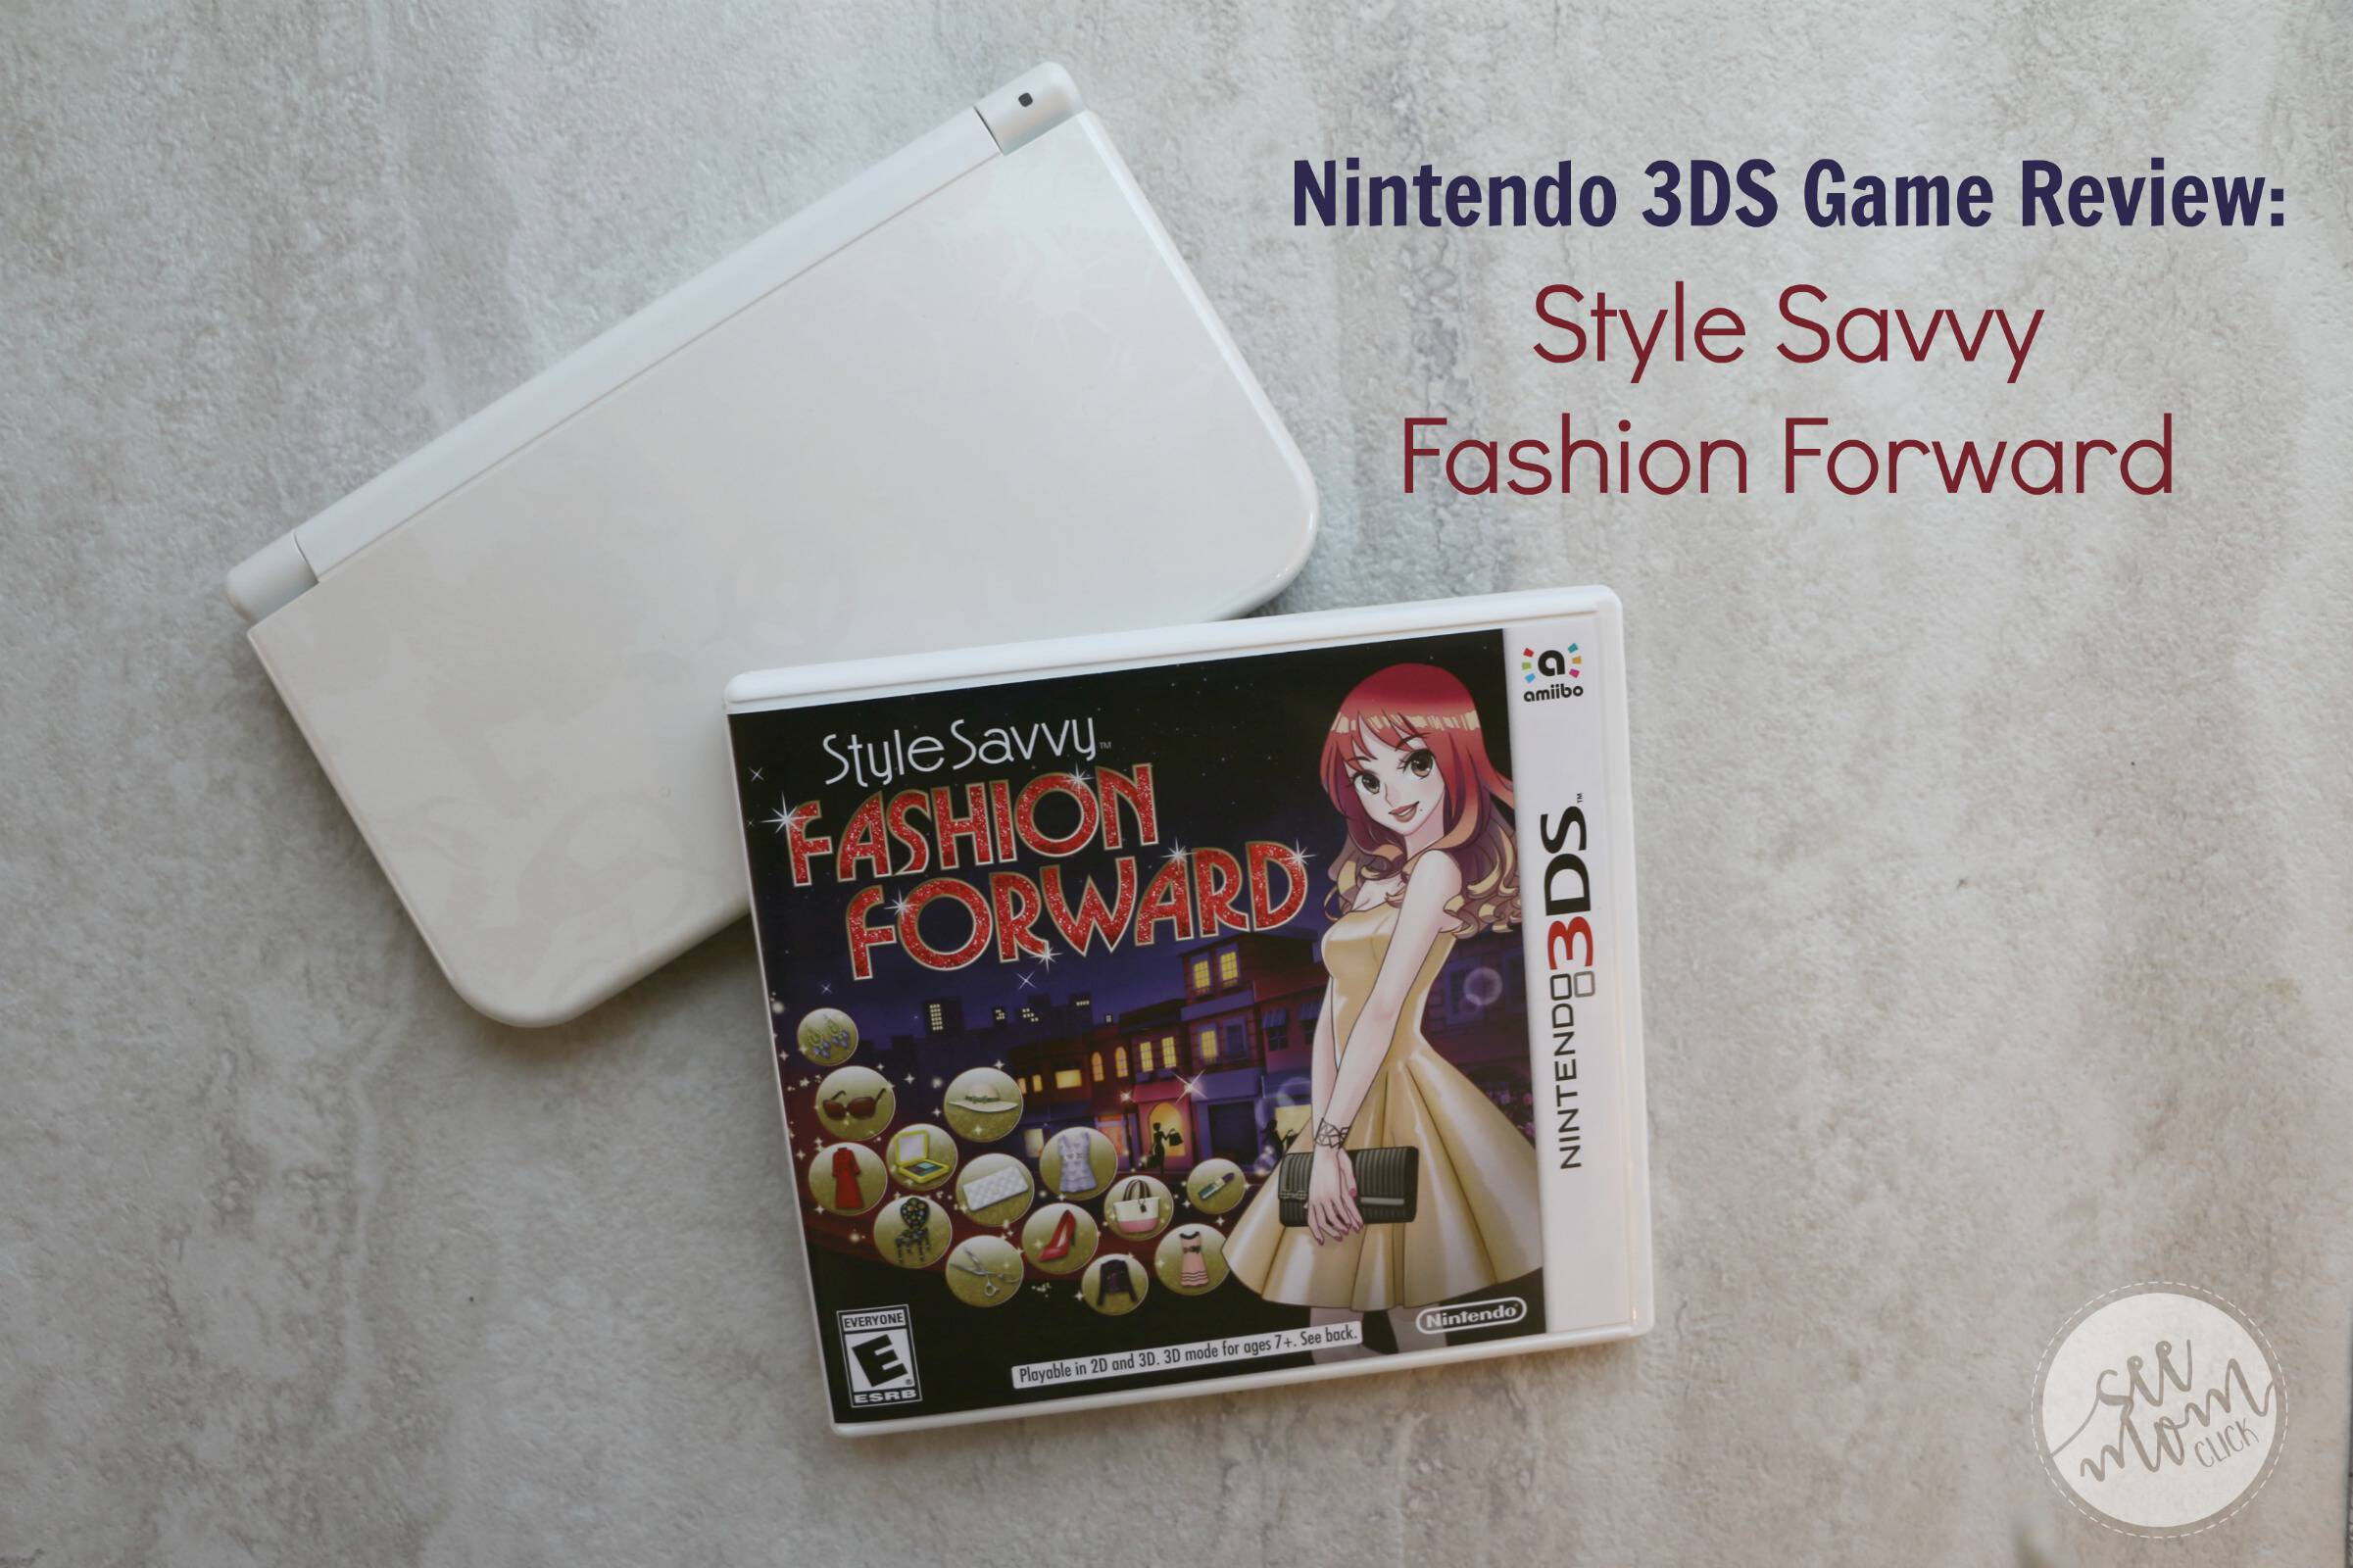 Now your kids can learn what it's like to be a fashion designer with this new game, Style Savvy Fashion Forward for Nintendo 3DS!